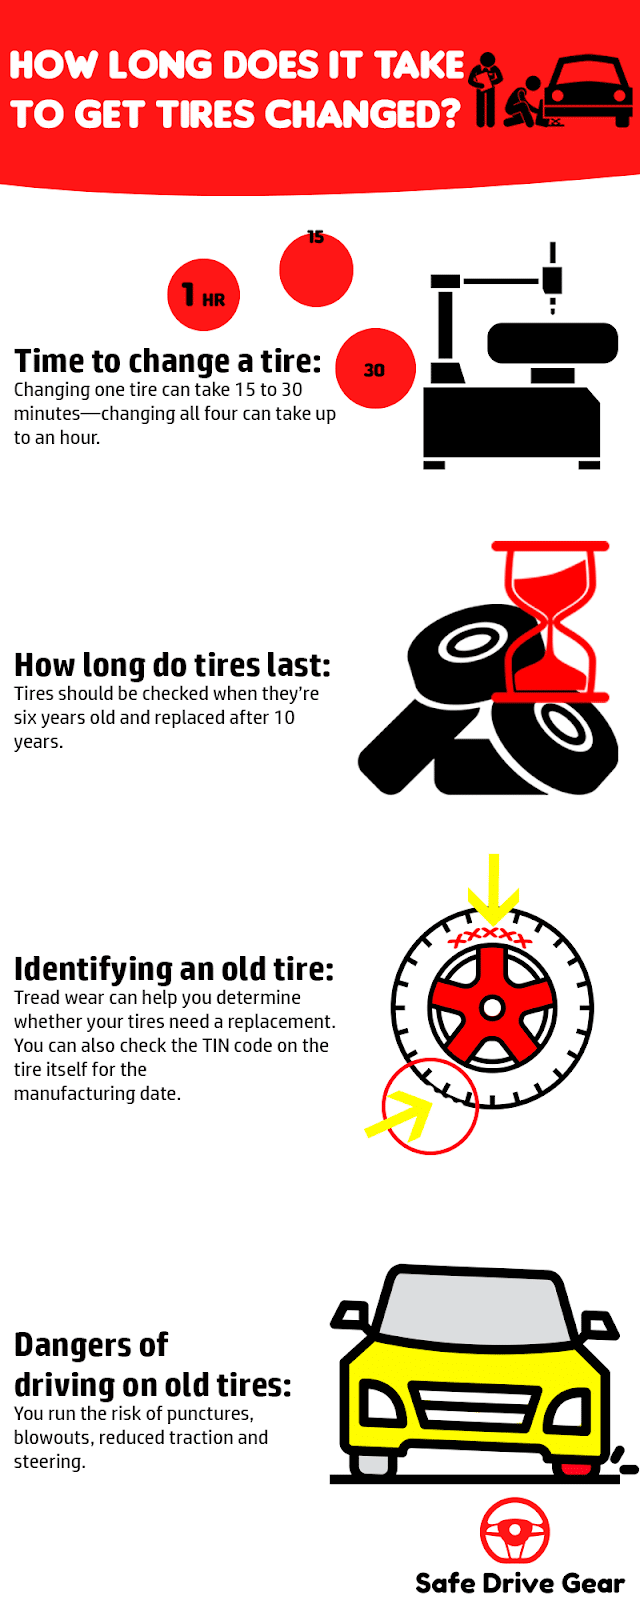 How Long Does It Take to Get Tires Changed